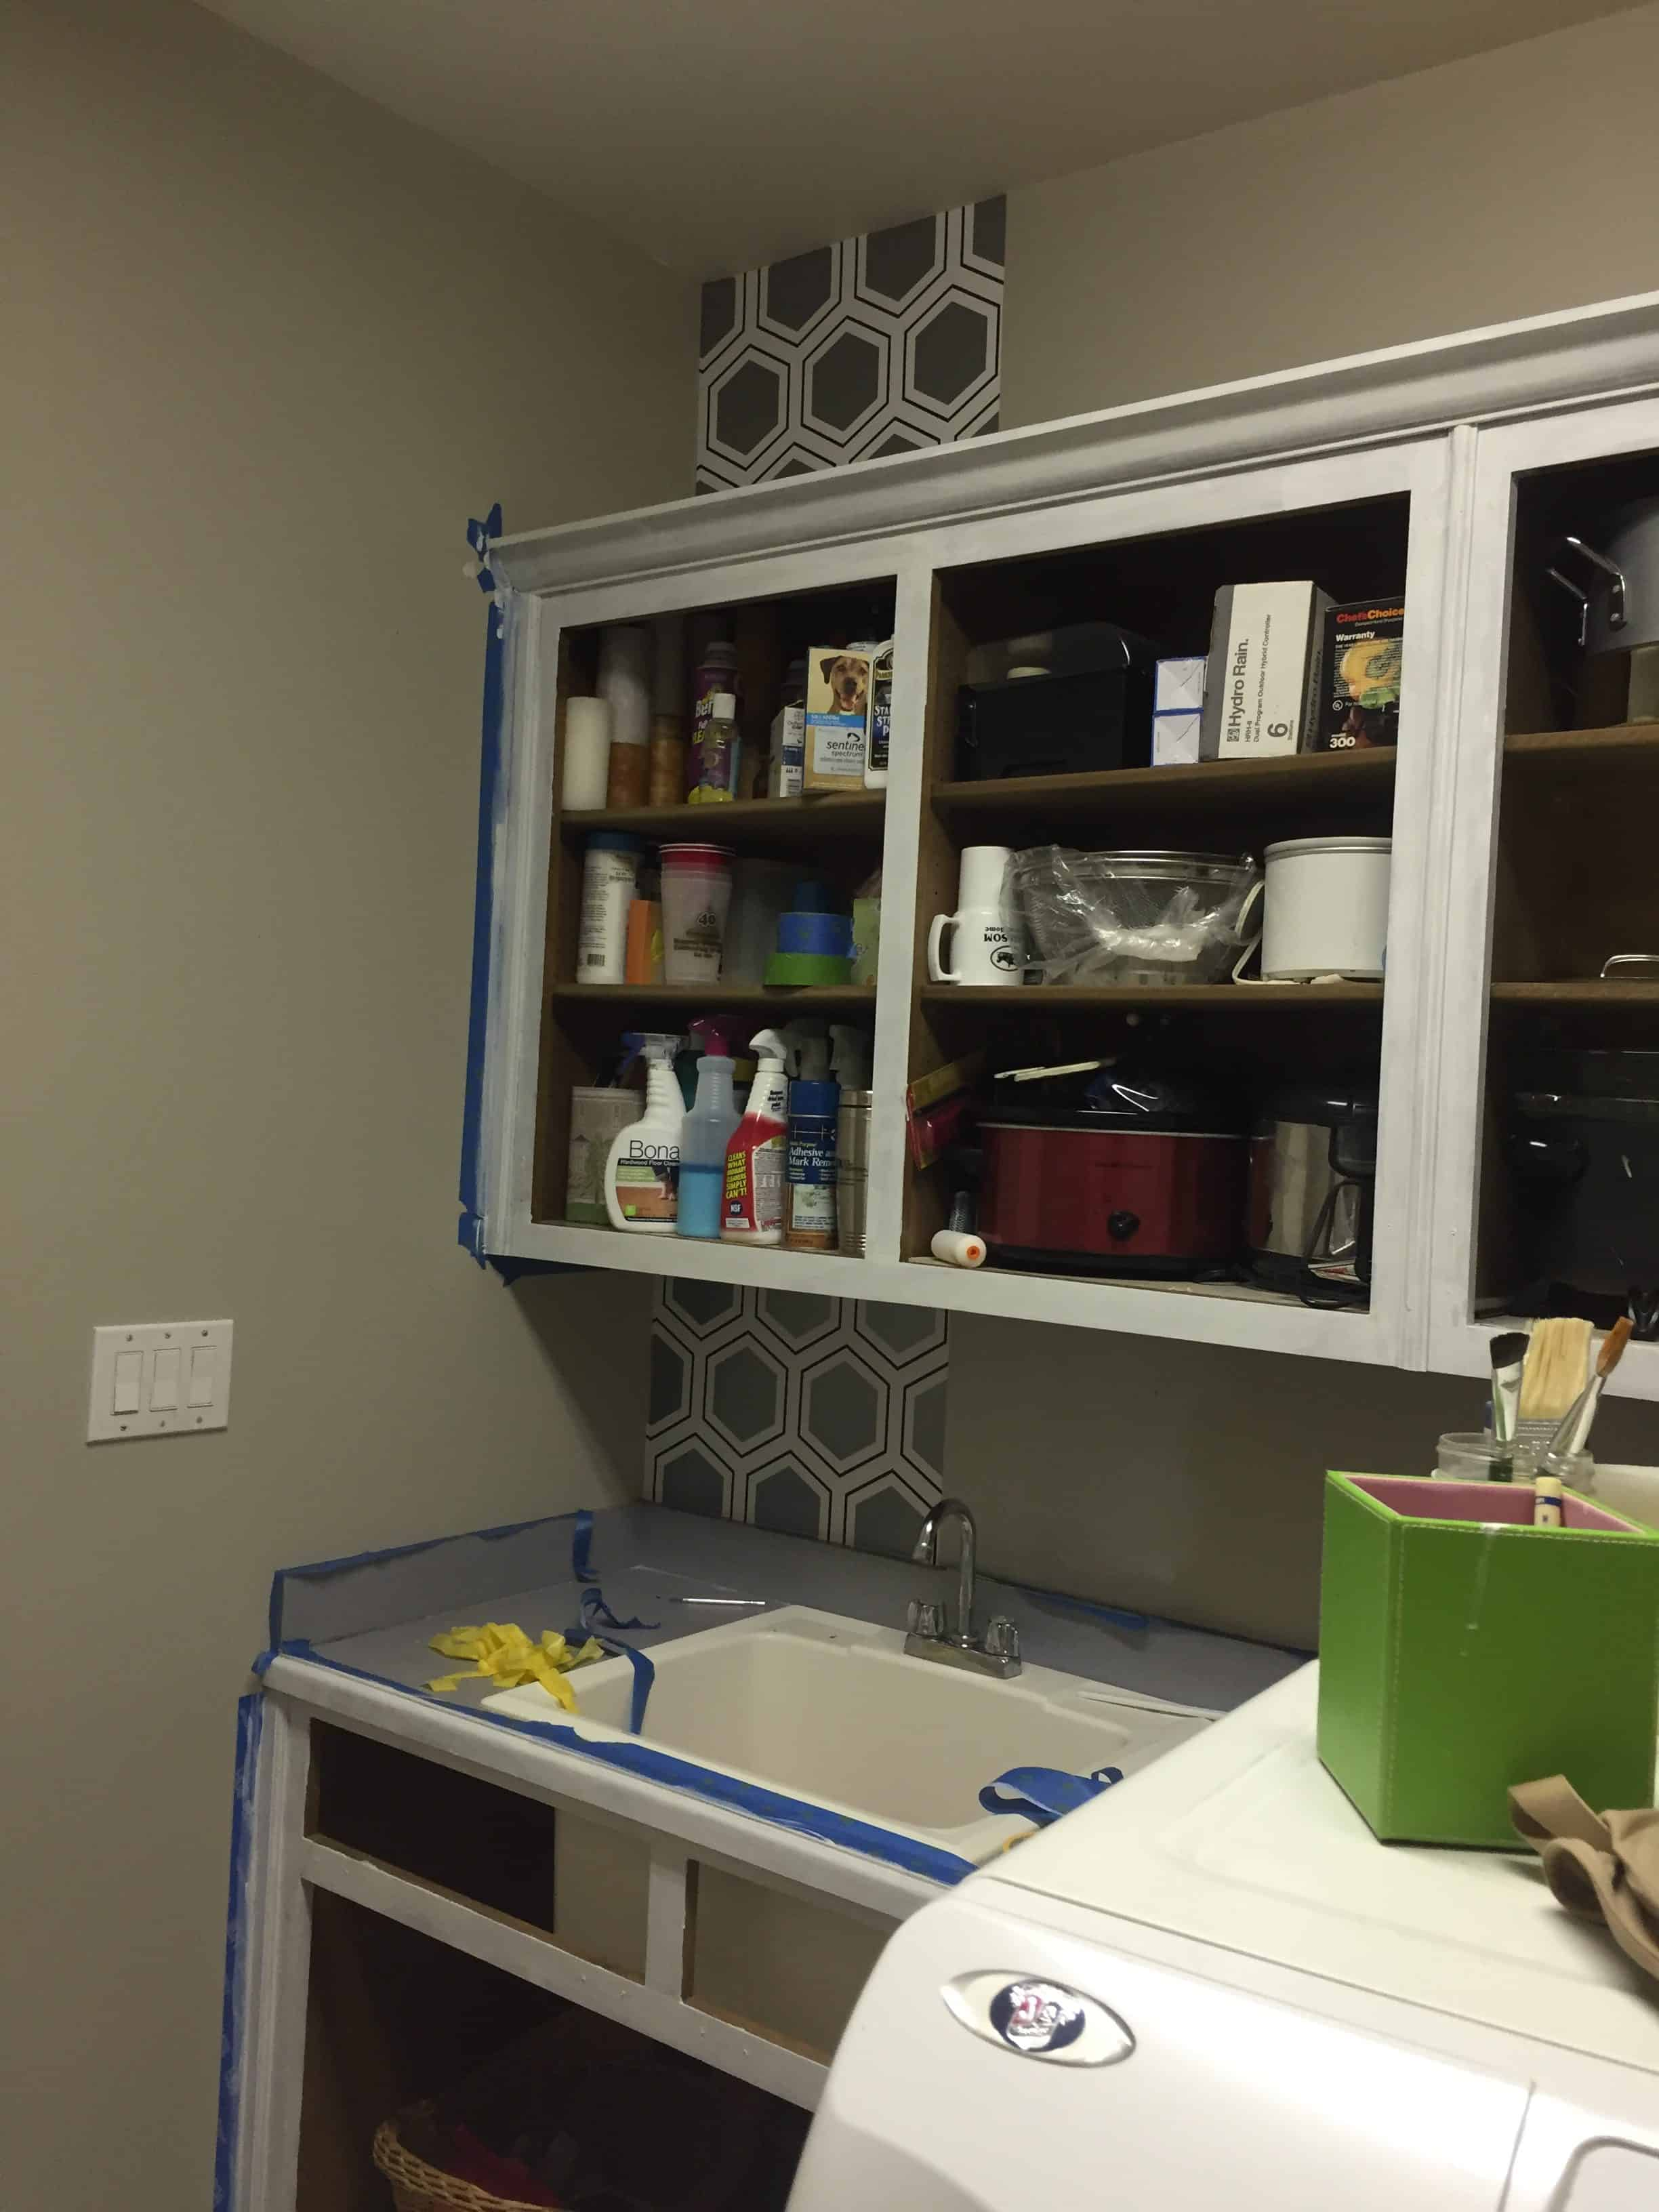 Cabinets in laundry room being painted.